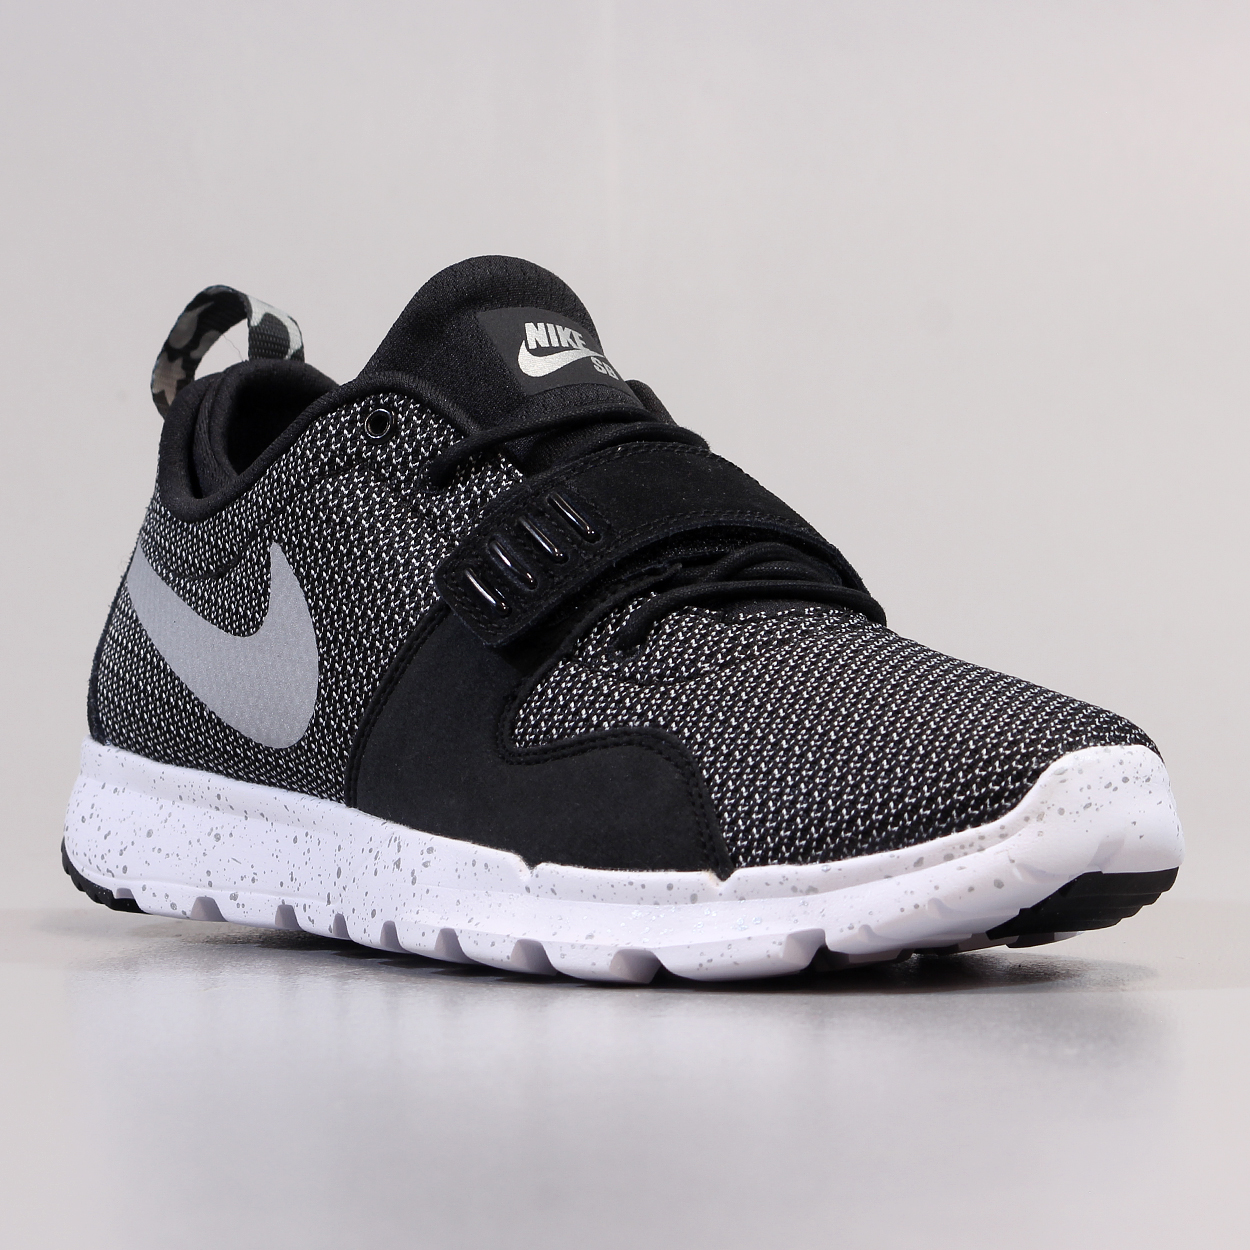 96320f30f3d75 The running influenced Trainerendor Shoes from Nike SB with a 3M reflective  swoosh and mesh uppers